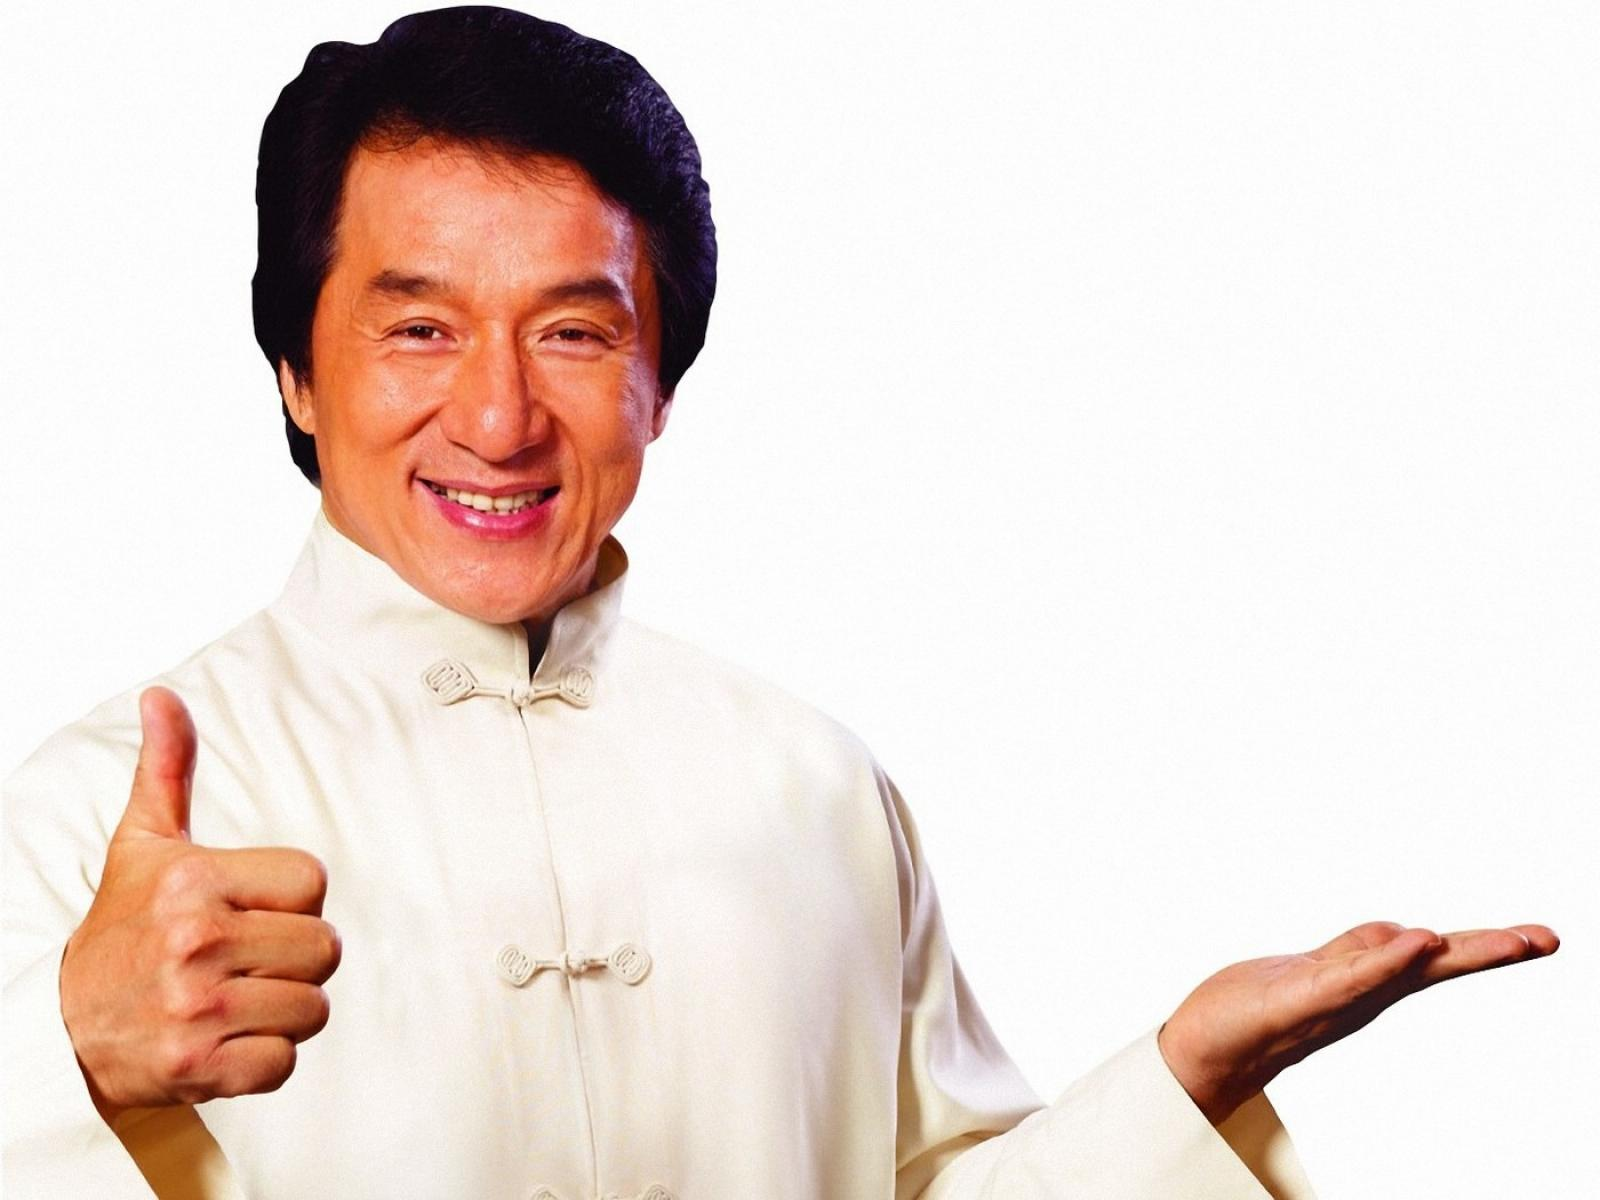 Jackie chan date of birth in Perth